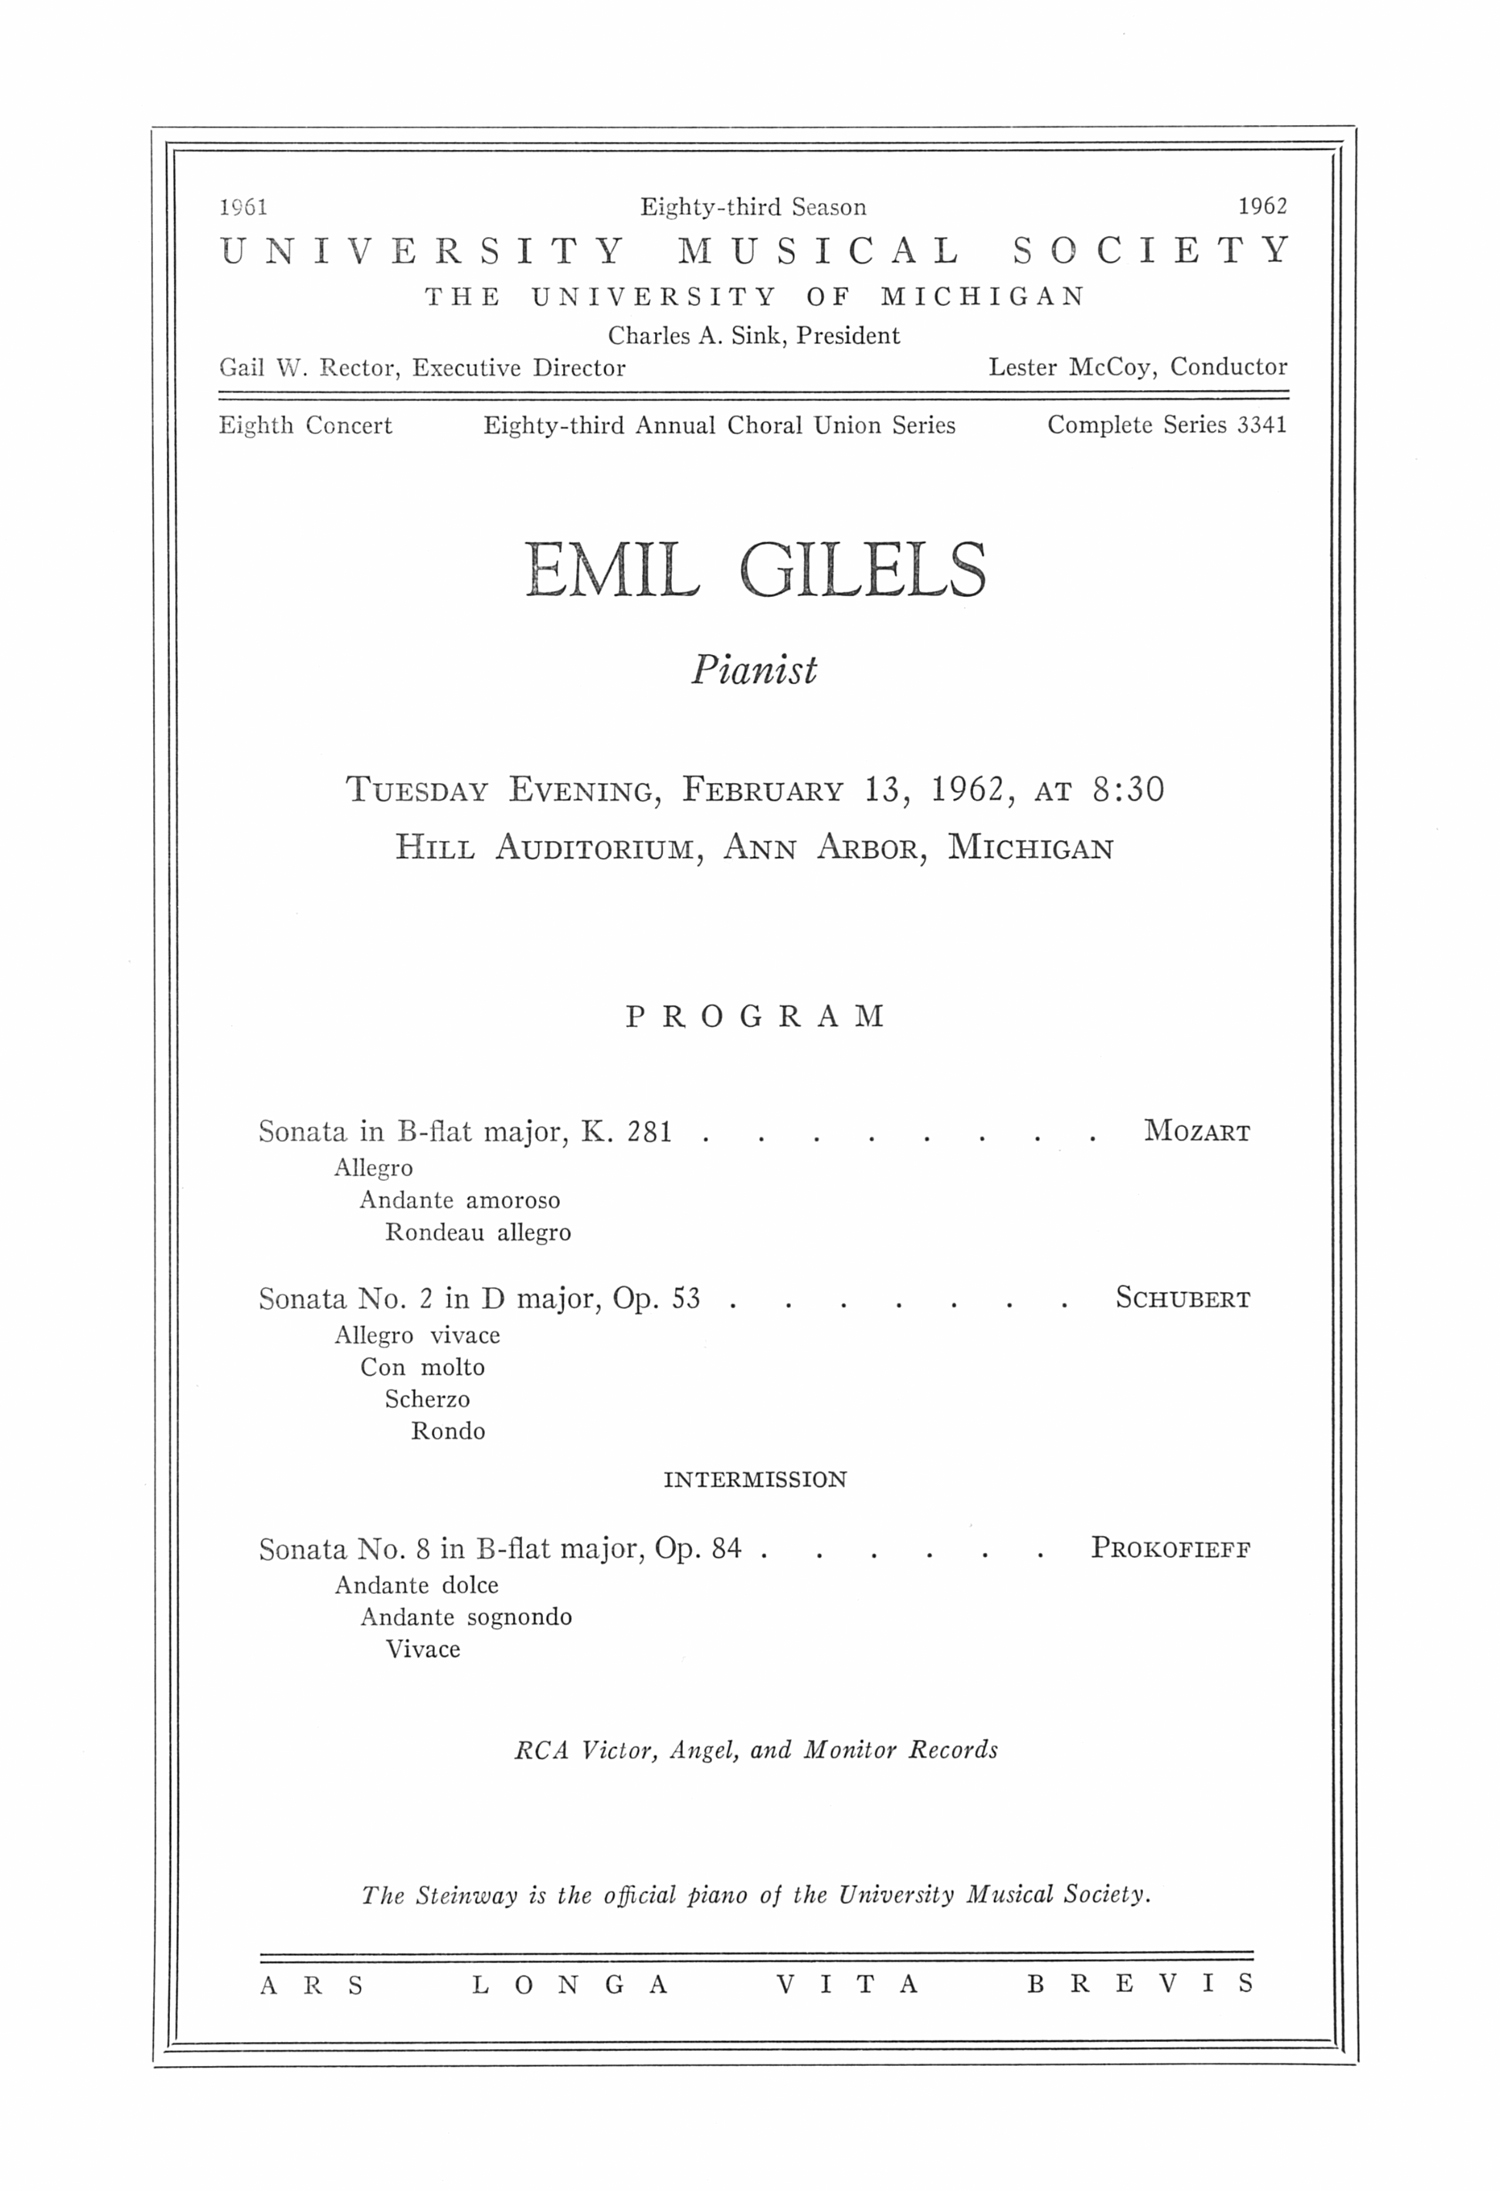 UMS Concert Program, February 13, 1962: Emil Gilels --  image